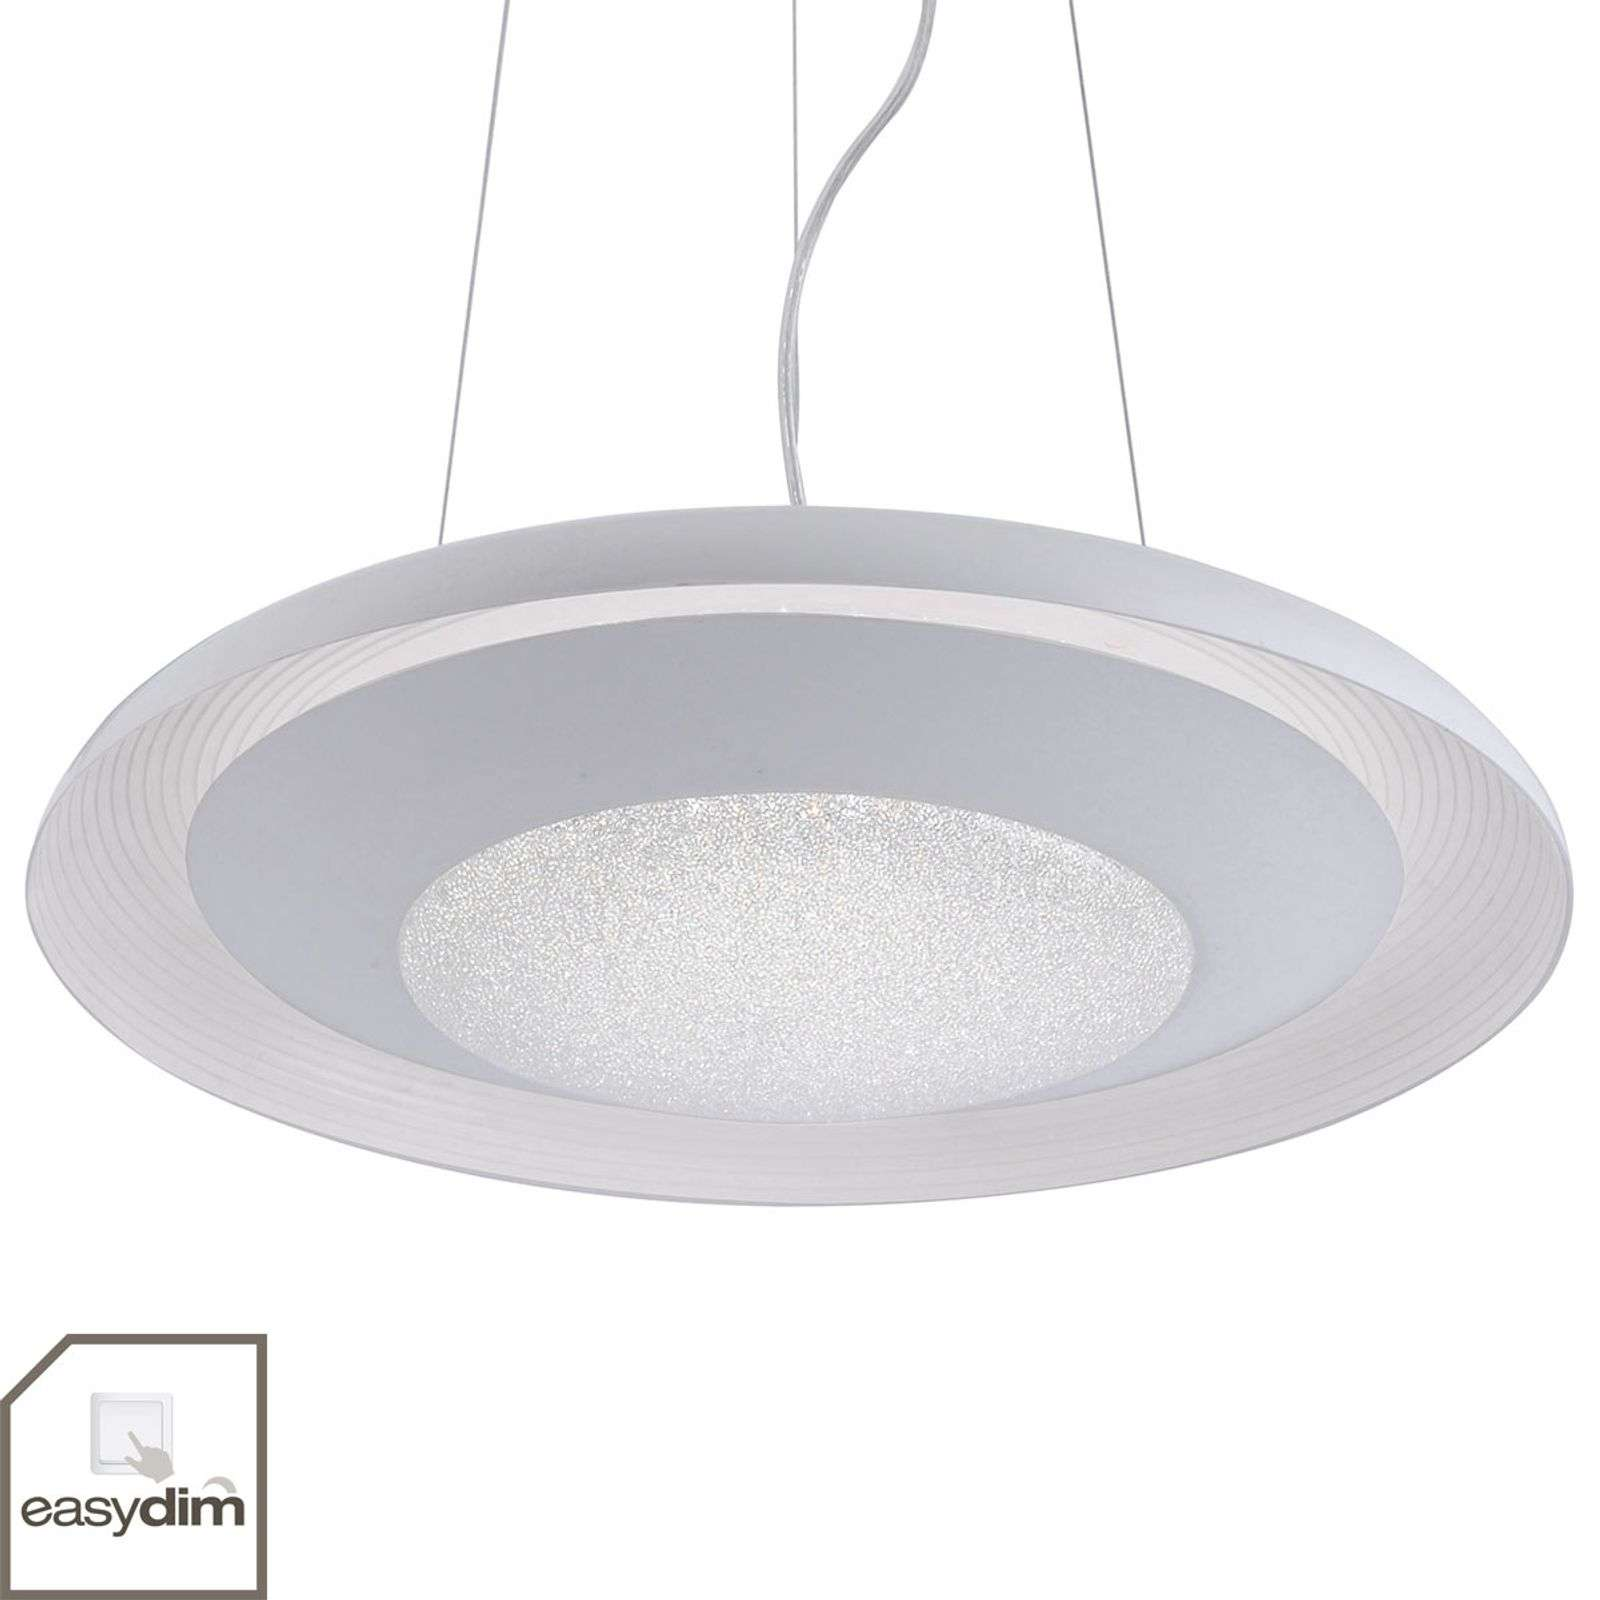 Suspension LED blanc Sarina - réglable en continu